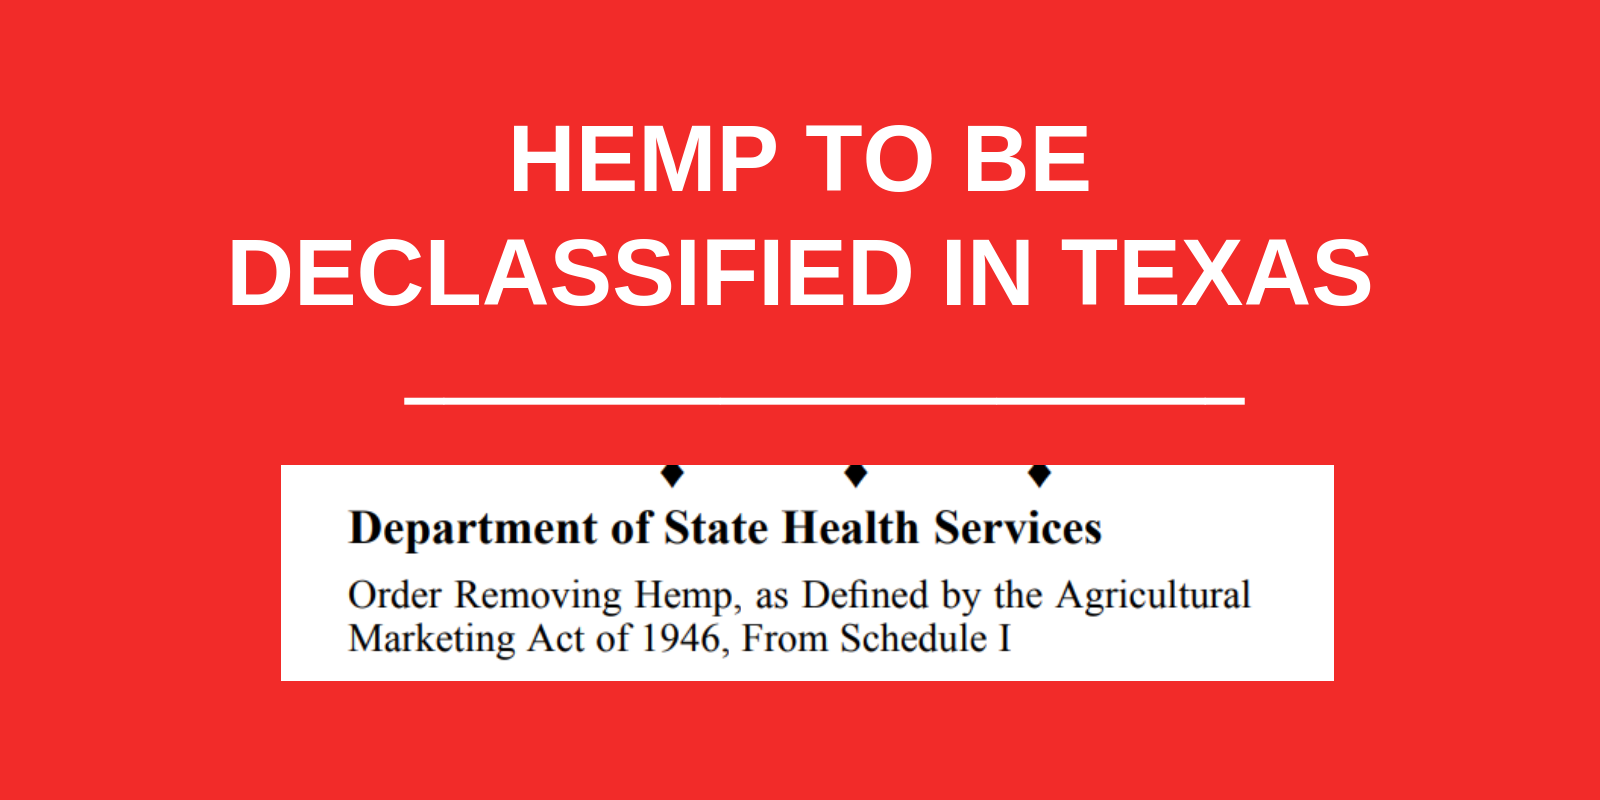 Hemp to Be Descheduled By SHS in Texas